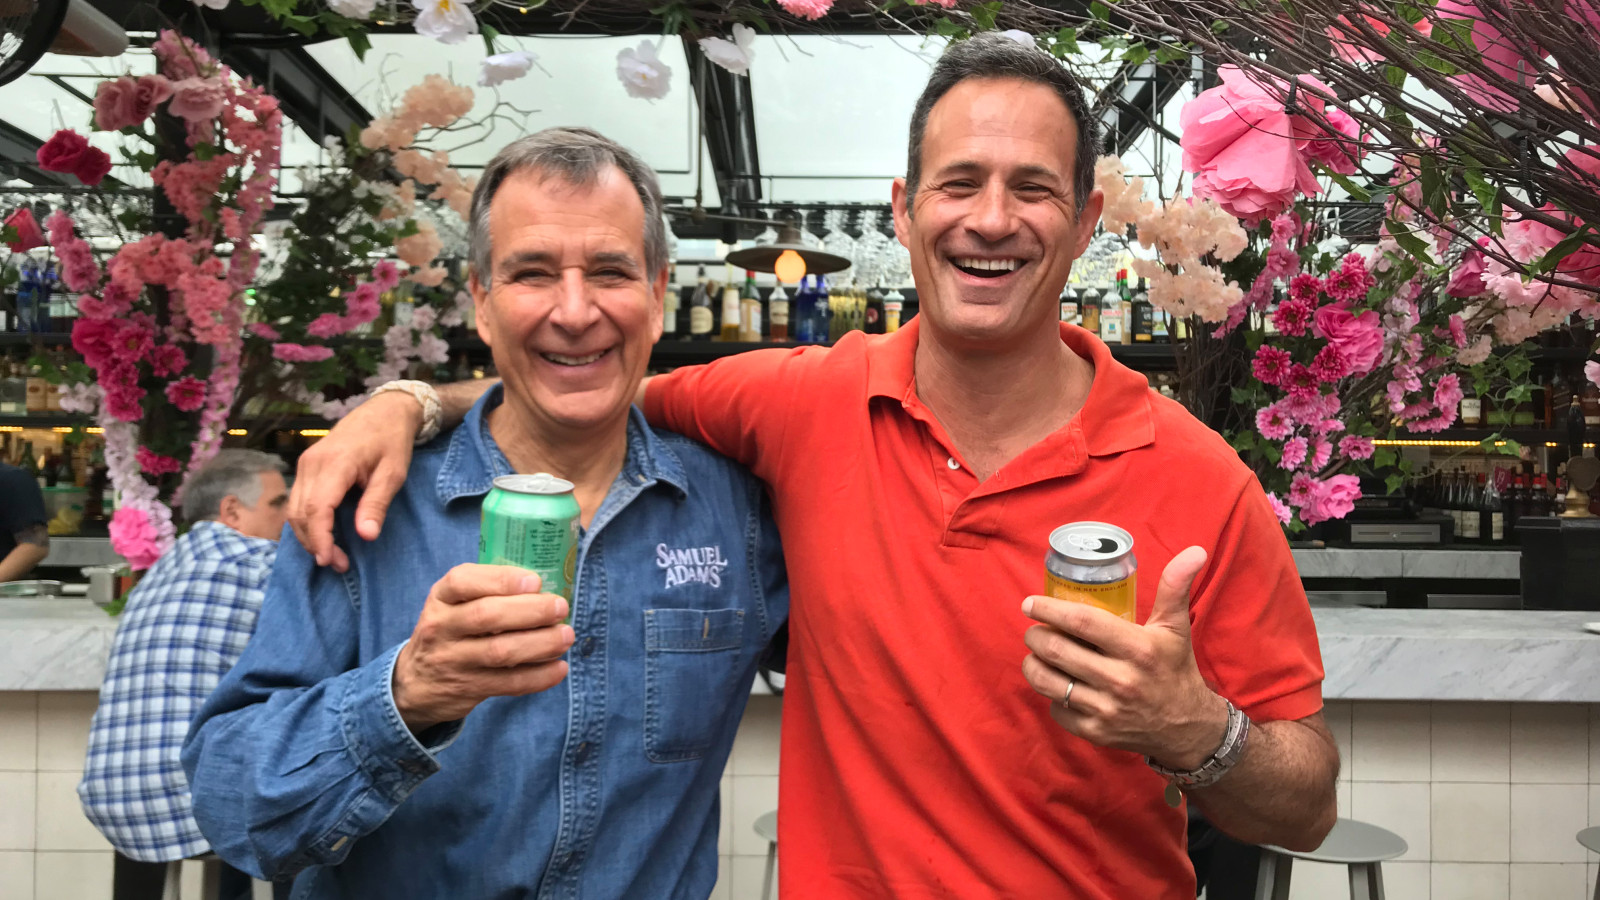 Jim Koch (left) and Sam Calagione at Eataly in New York City.